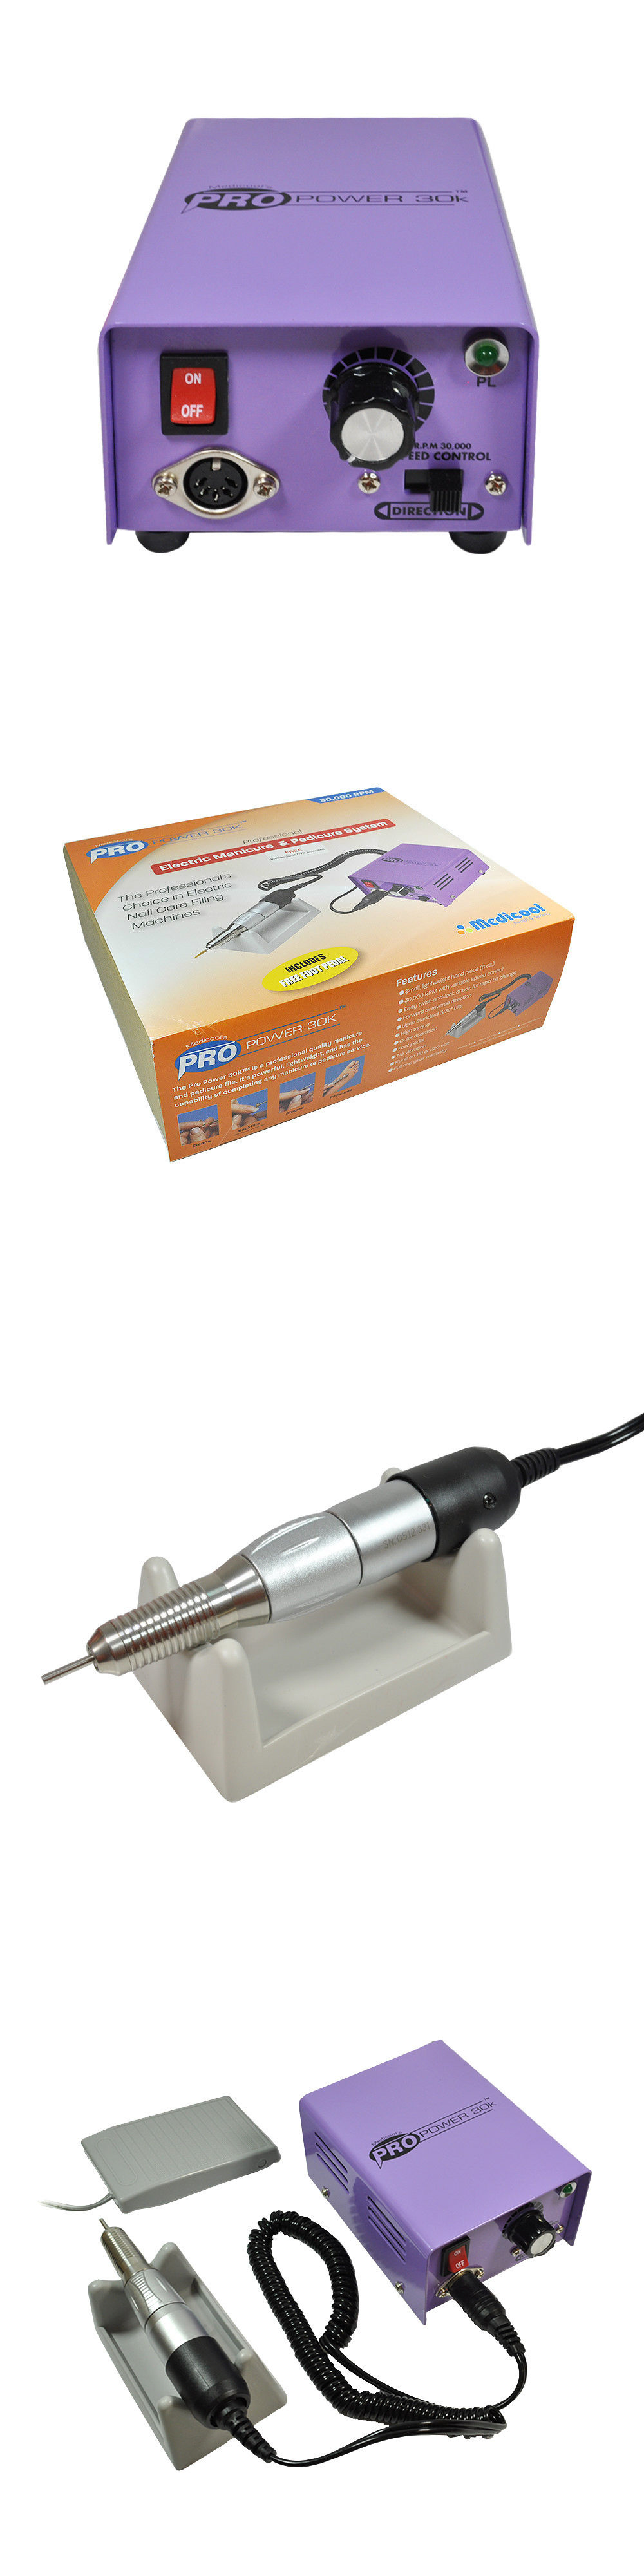 Manicure Pedicure Tools and Kits: Medicool Propower Pro Power 30K ...